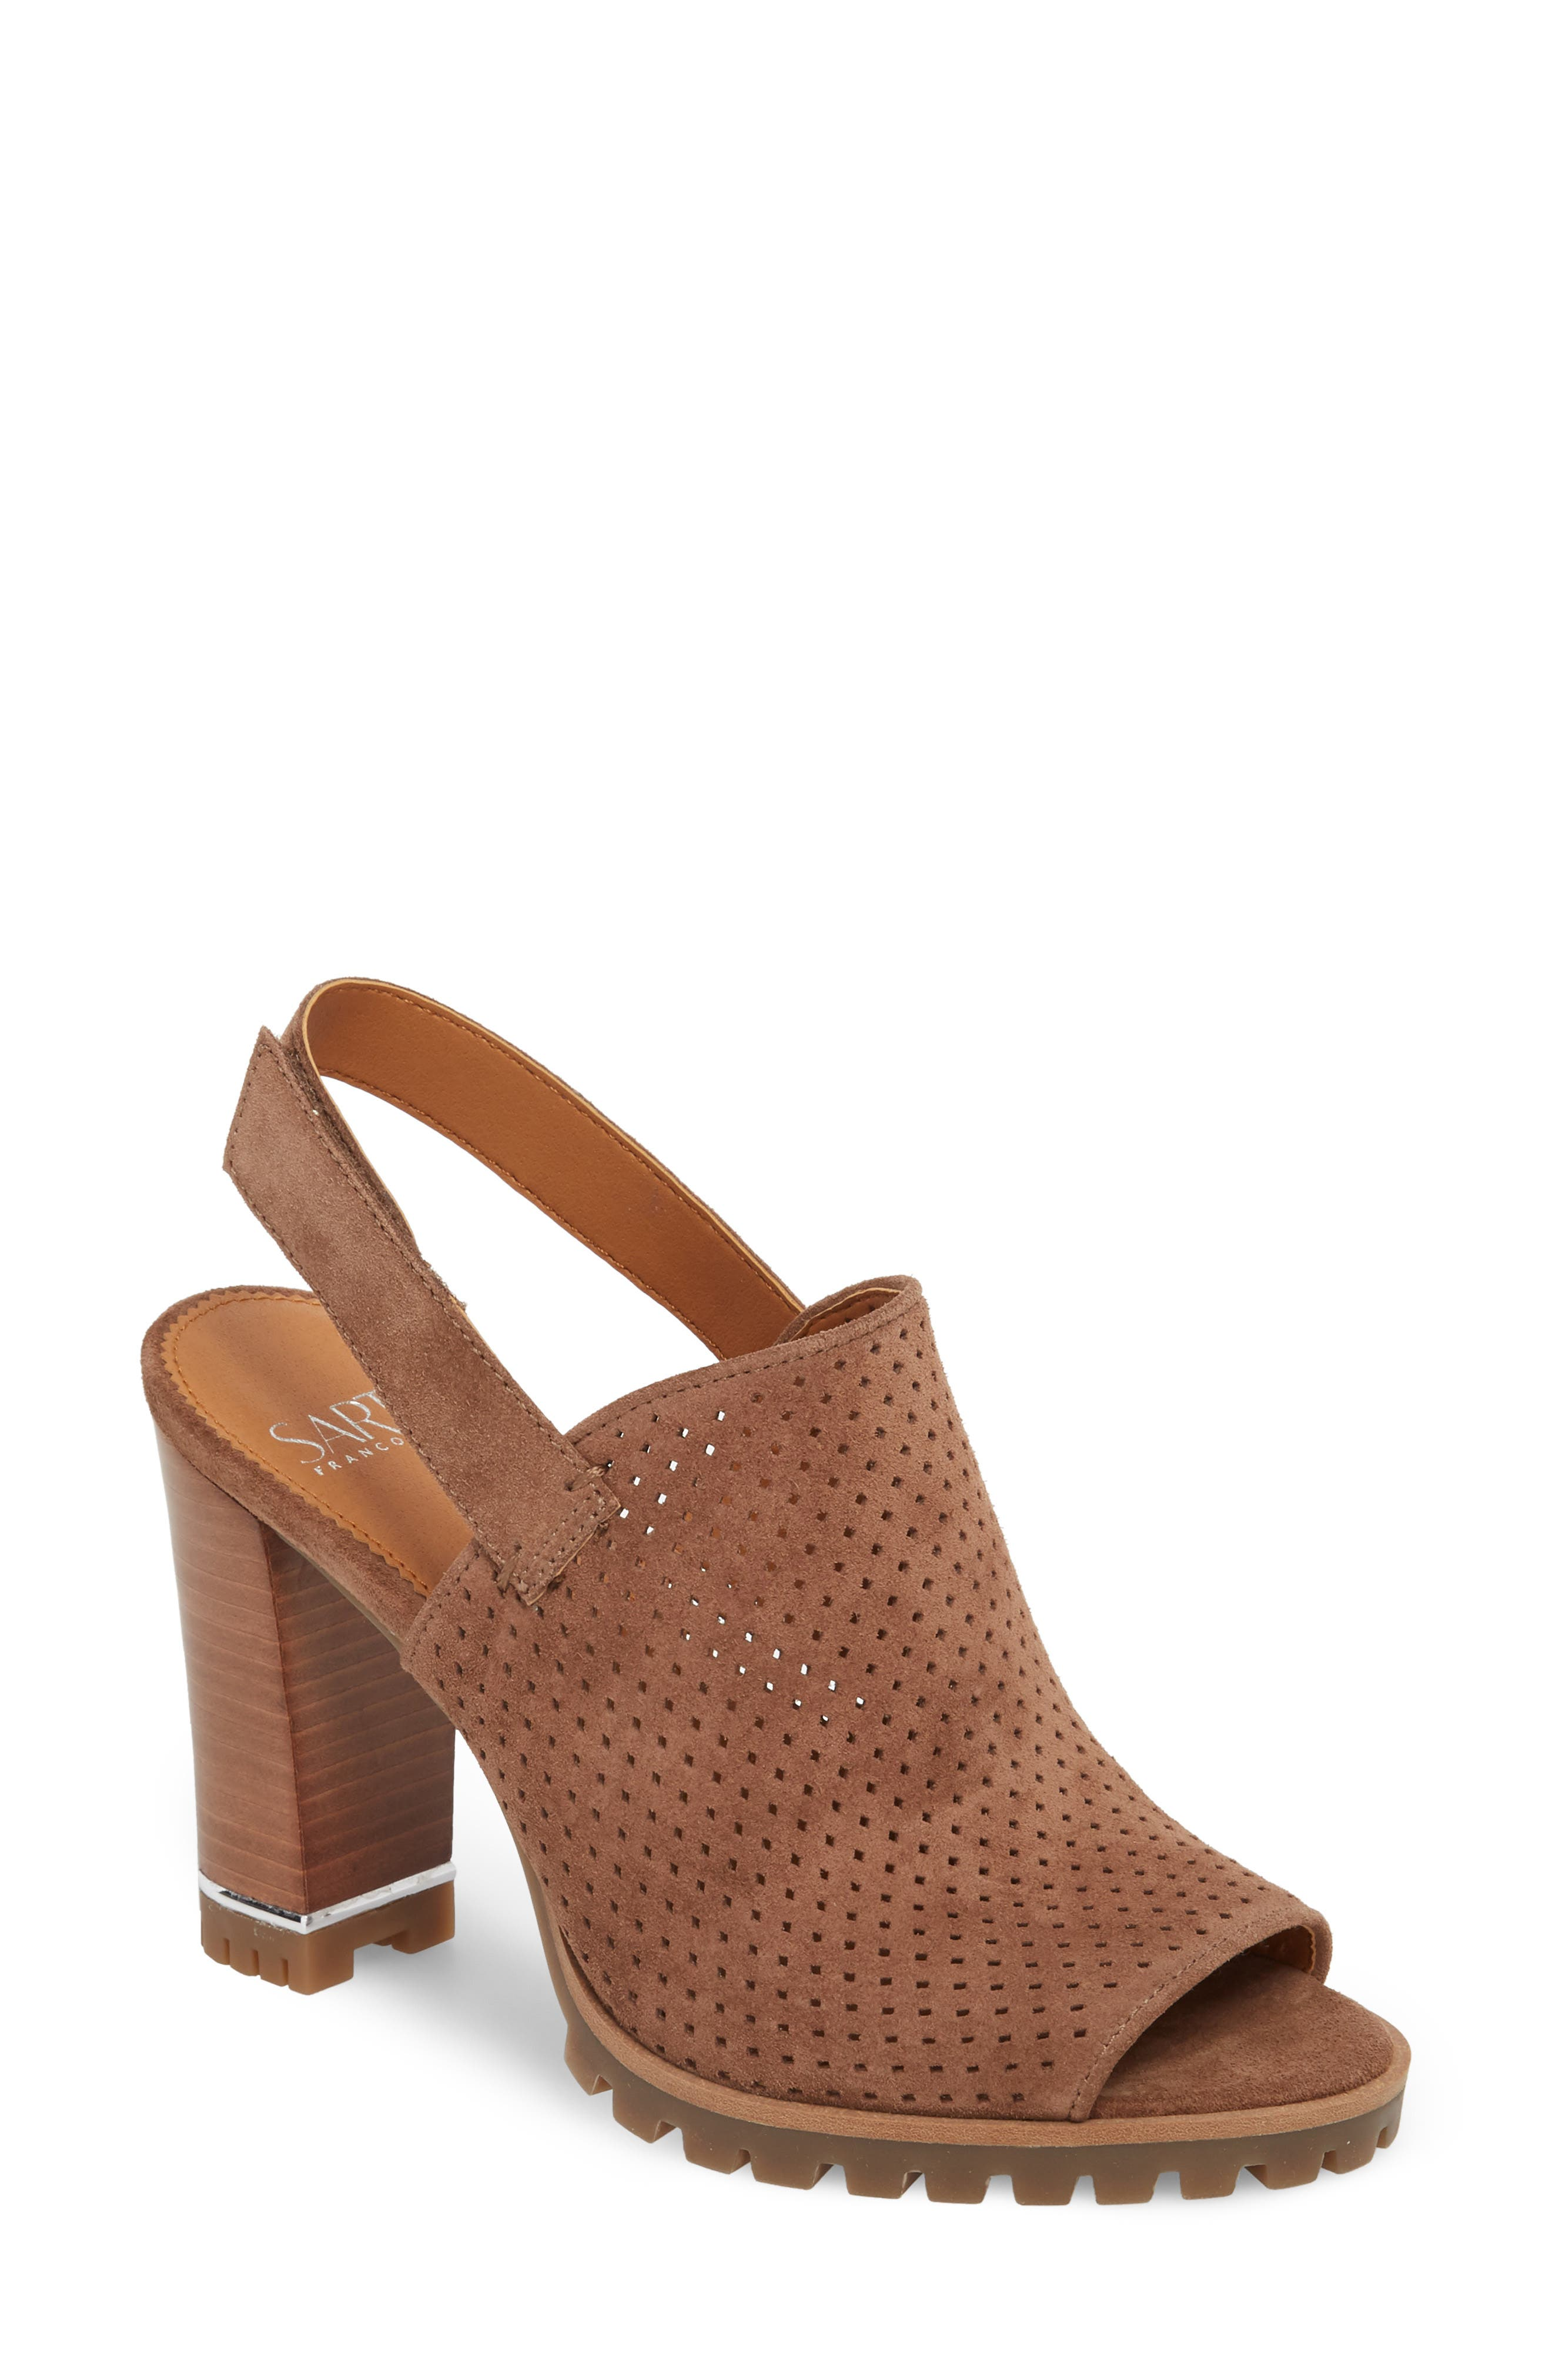 Analise Sandal,                         Main,                         color, Toffee Suede